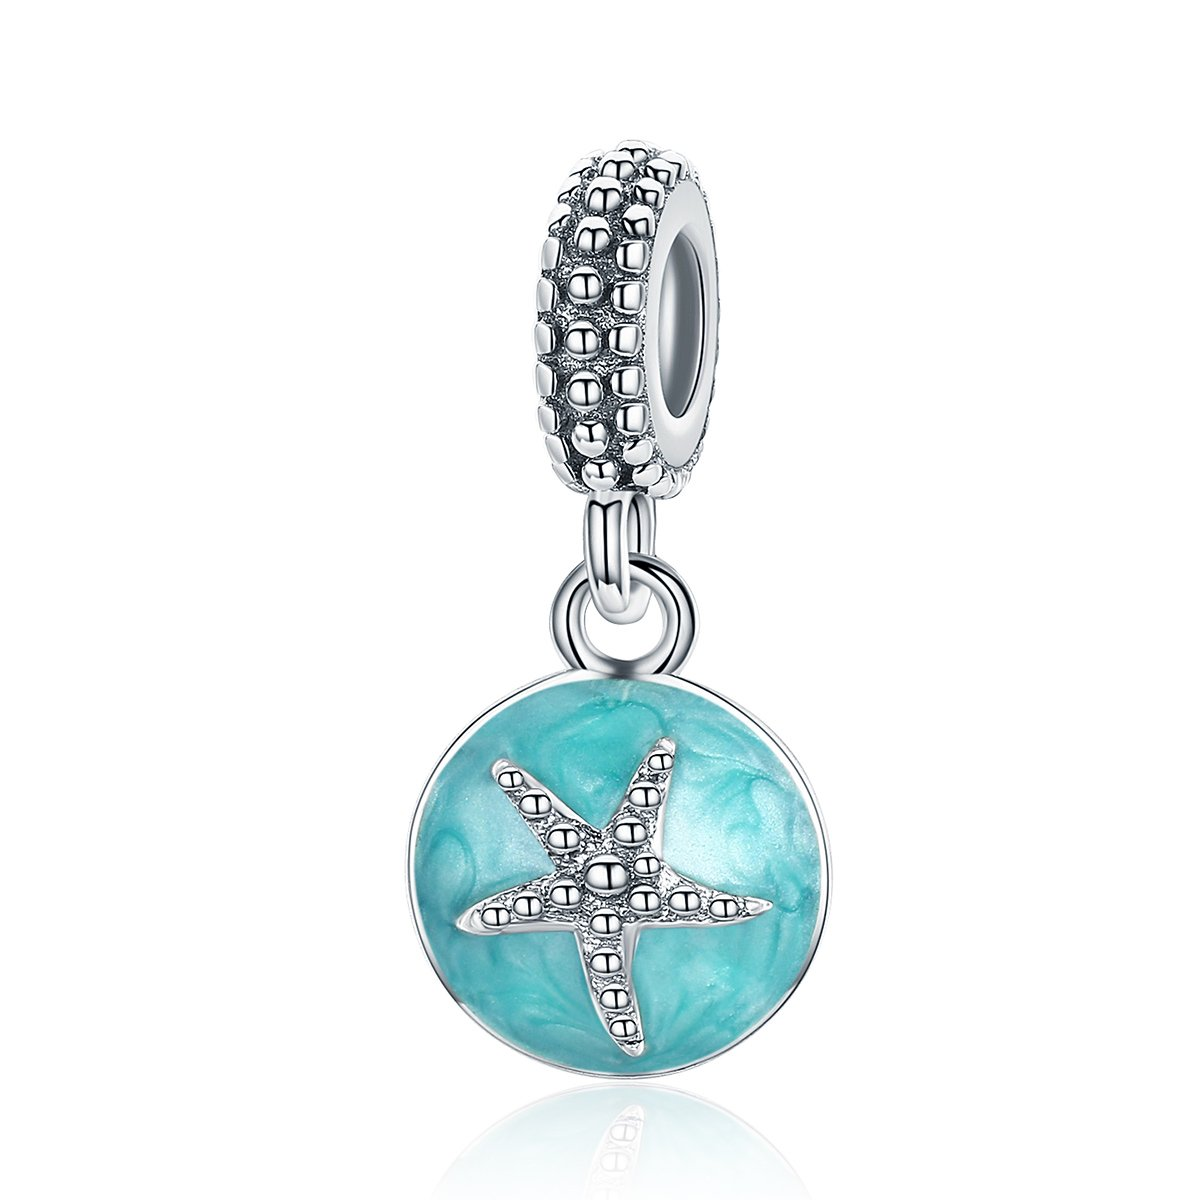 WOSTU Summer Charms Jewelry 925 Sterling Silver Starflish Dangle Charm for Charm Bracelets